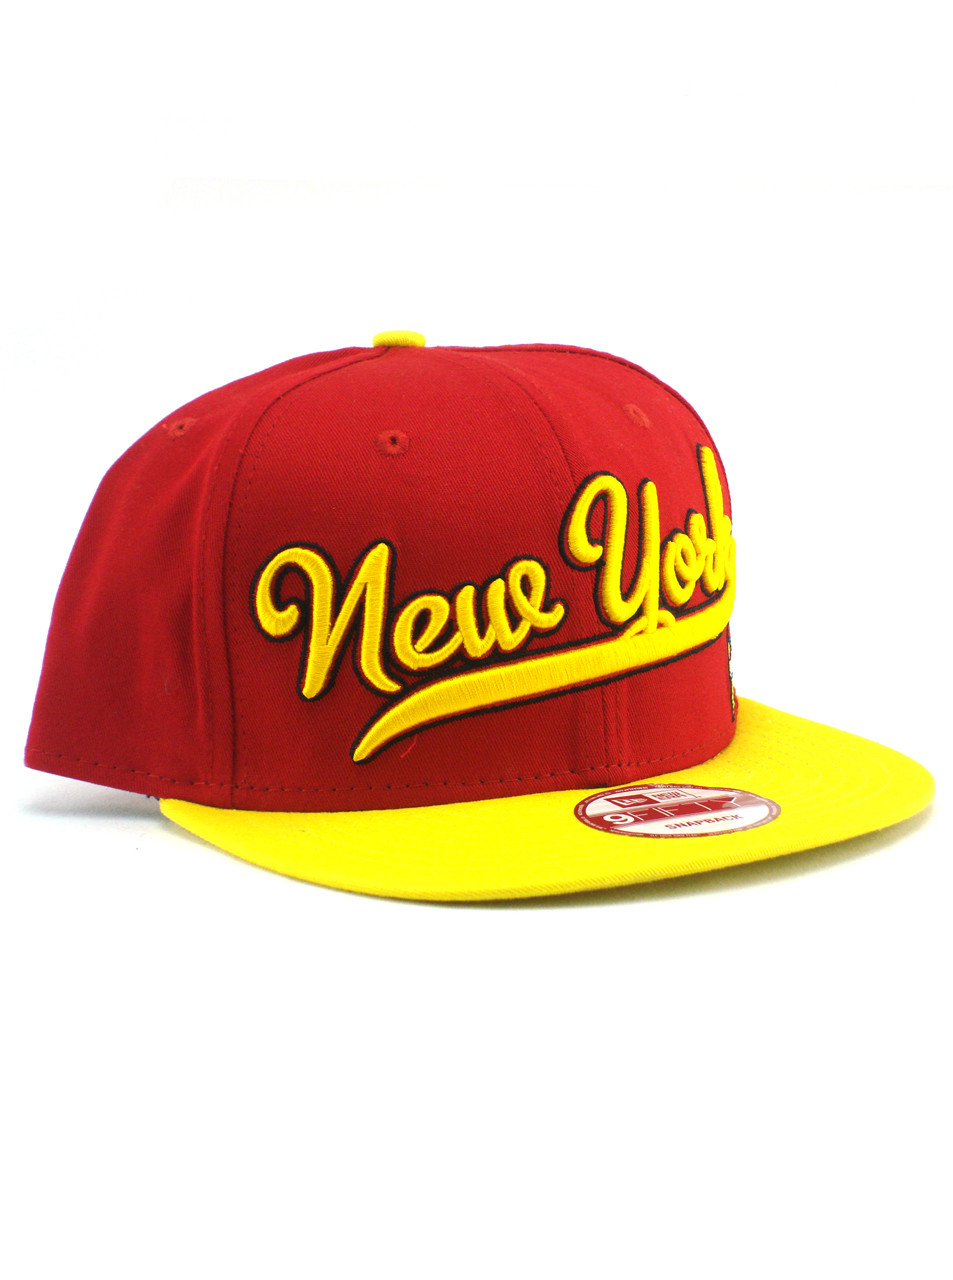 ... black silver 5bc88 11cdb spain new era new york iron man 9fifty snapback  hat view 1 1c2a7 fd001 ... 490d6d5de533